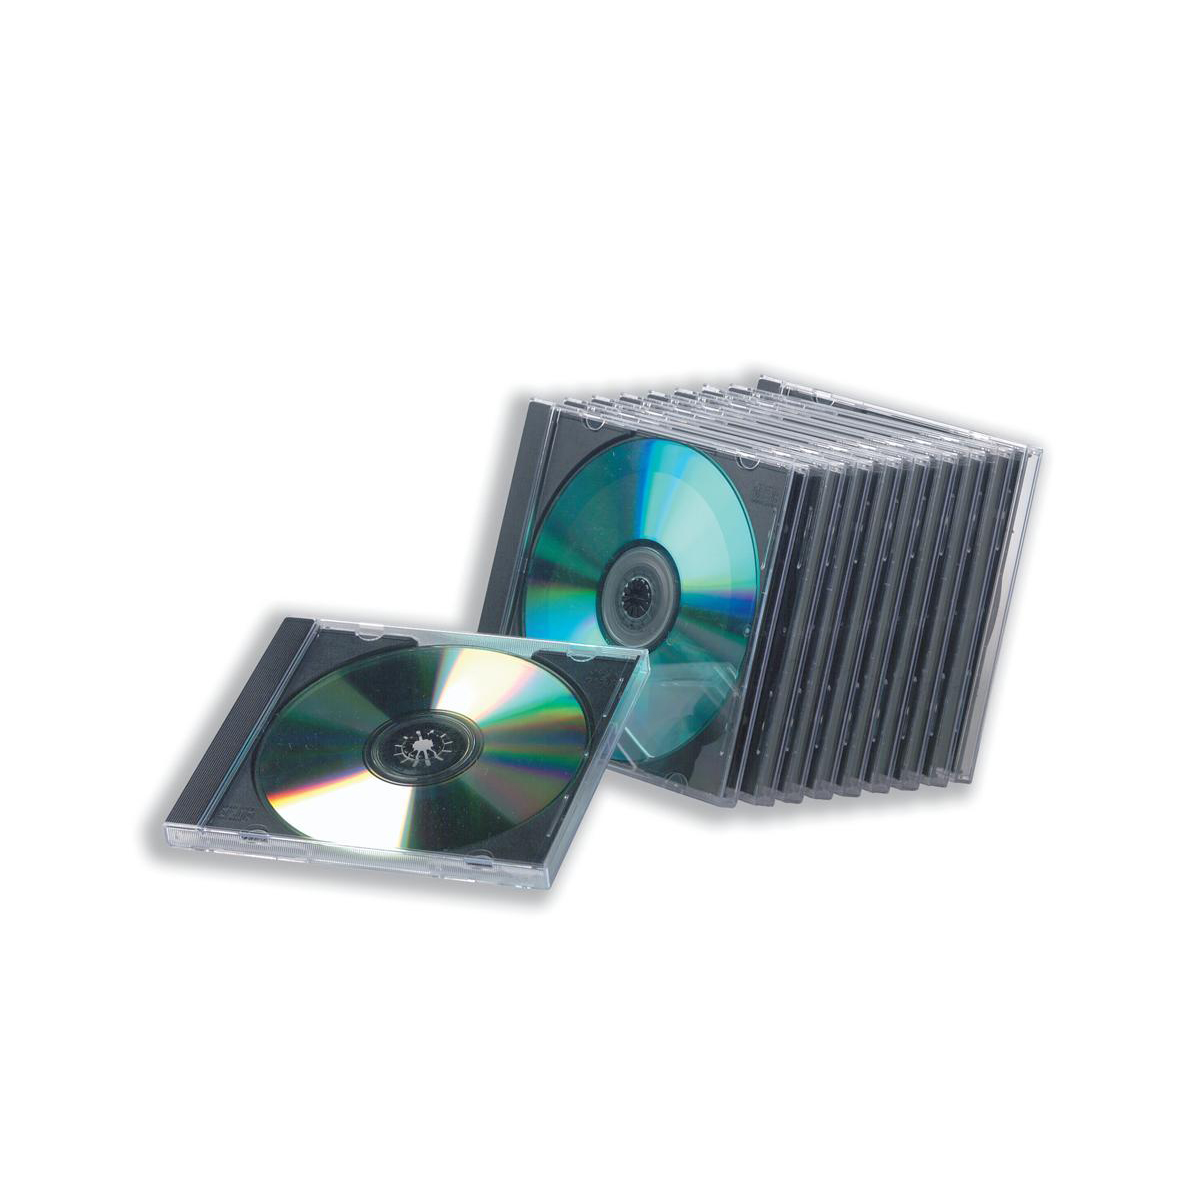 Cases CD Jewel Case with High Impact Protection Plastic Clear Pack 10